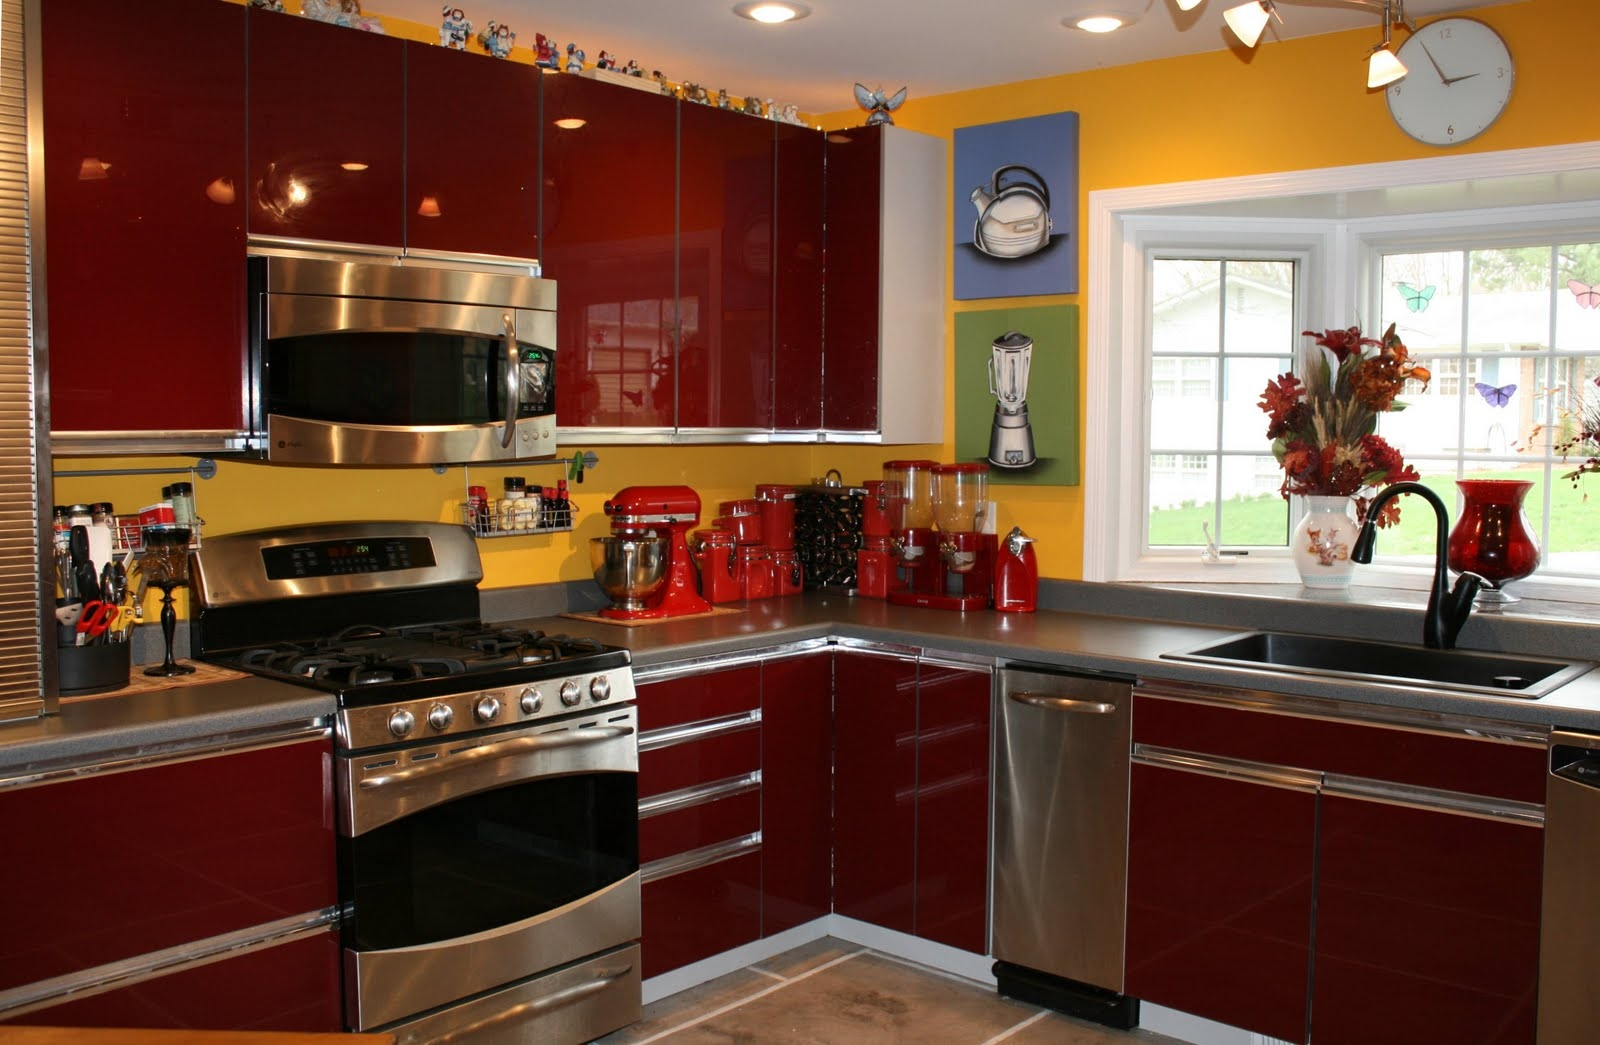 Permalink to Red Kitchen Cabinets With Yellow Walls